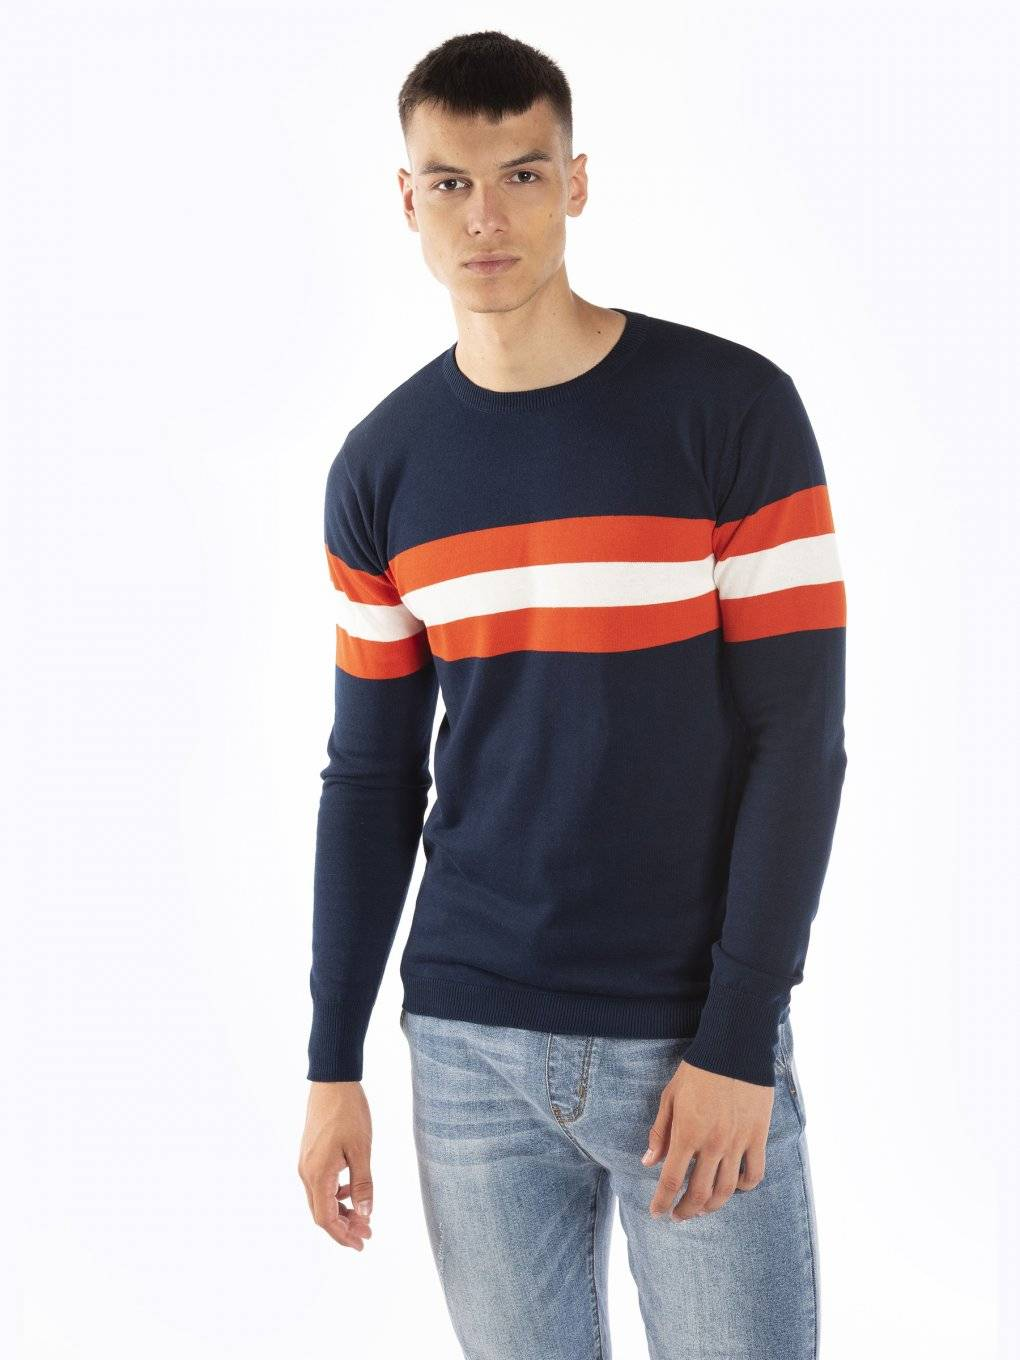 Cotton jumper with stripes